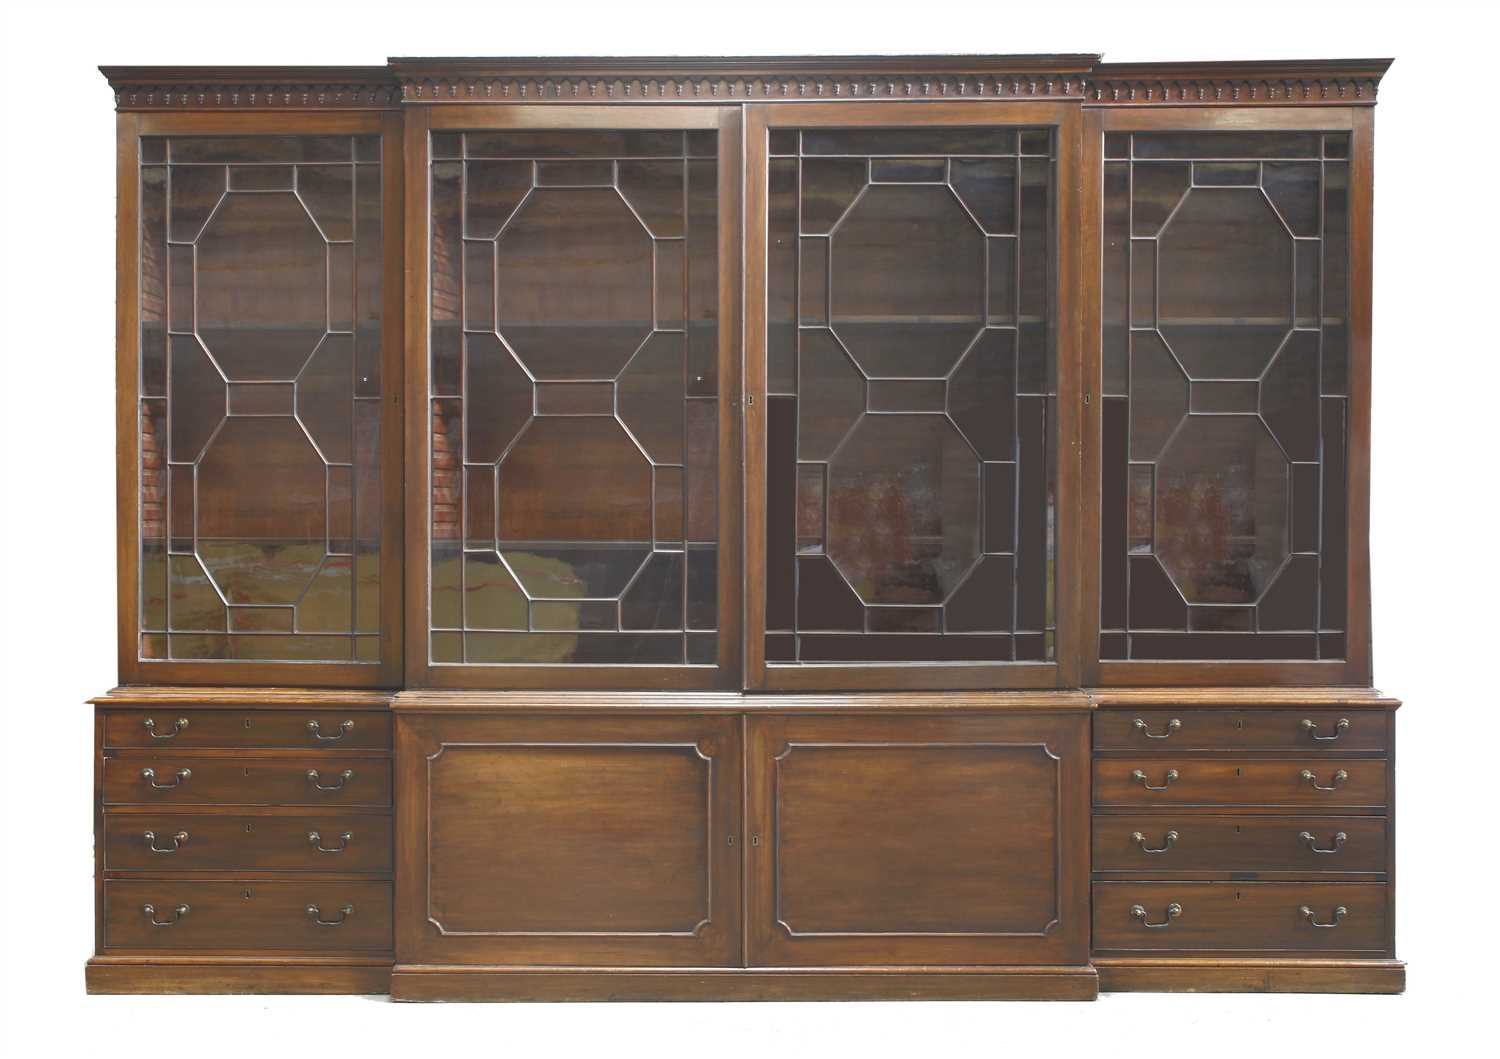 Lot 148 - A George III-style mahogany breakfront bookcase,